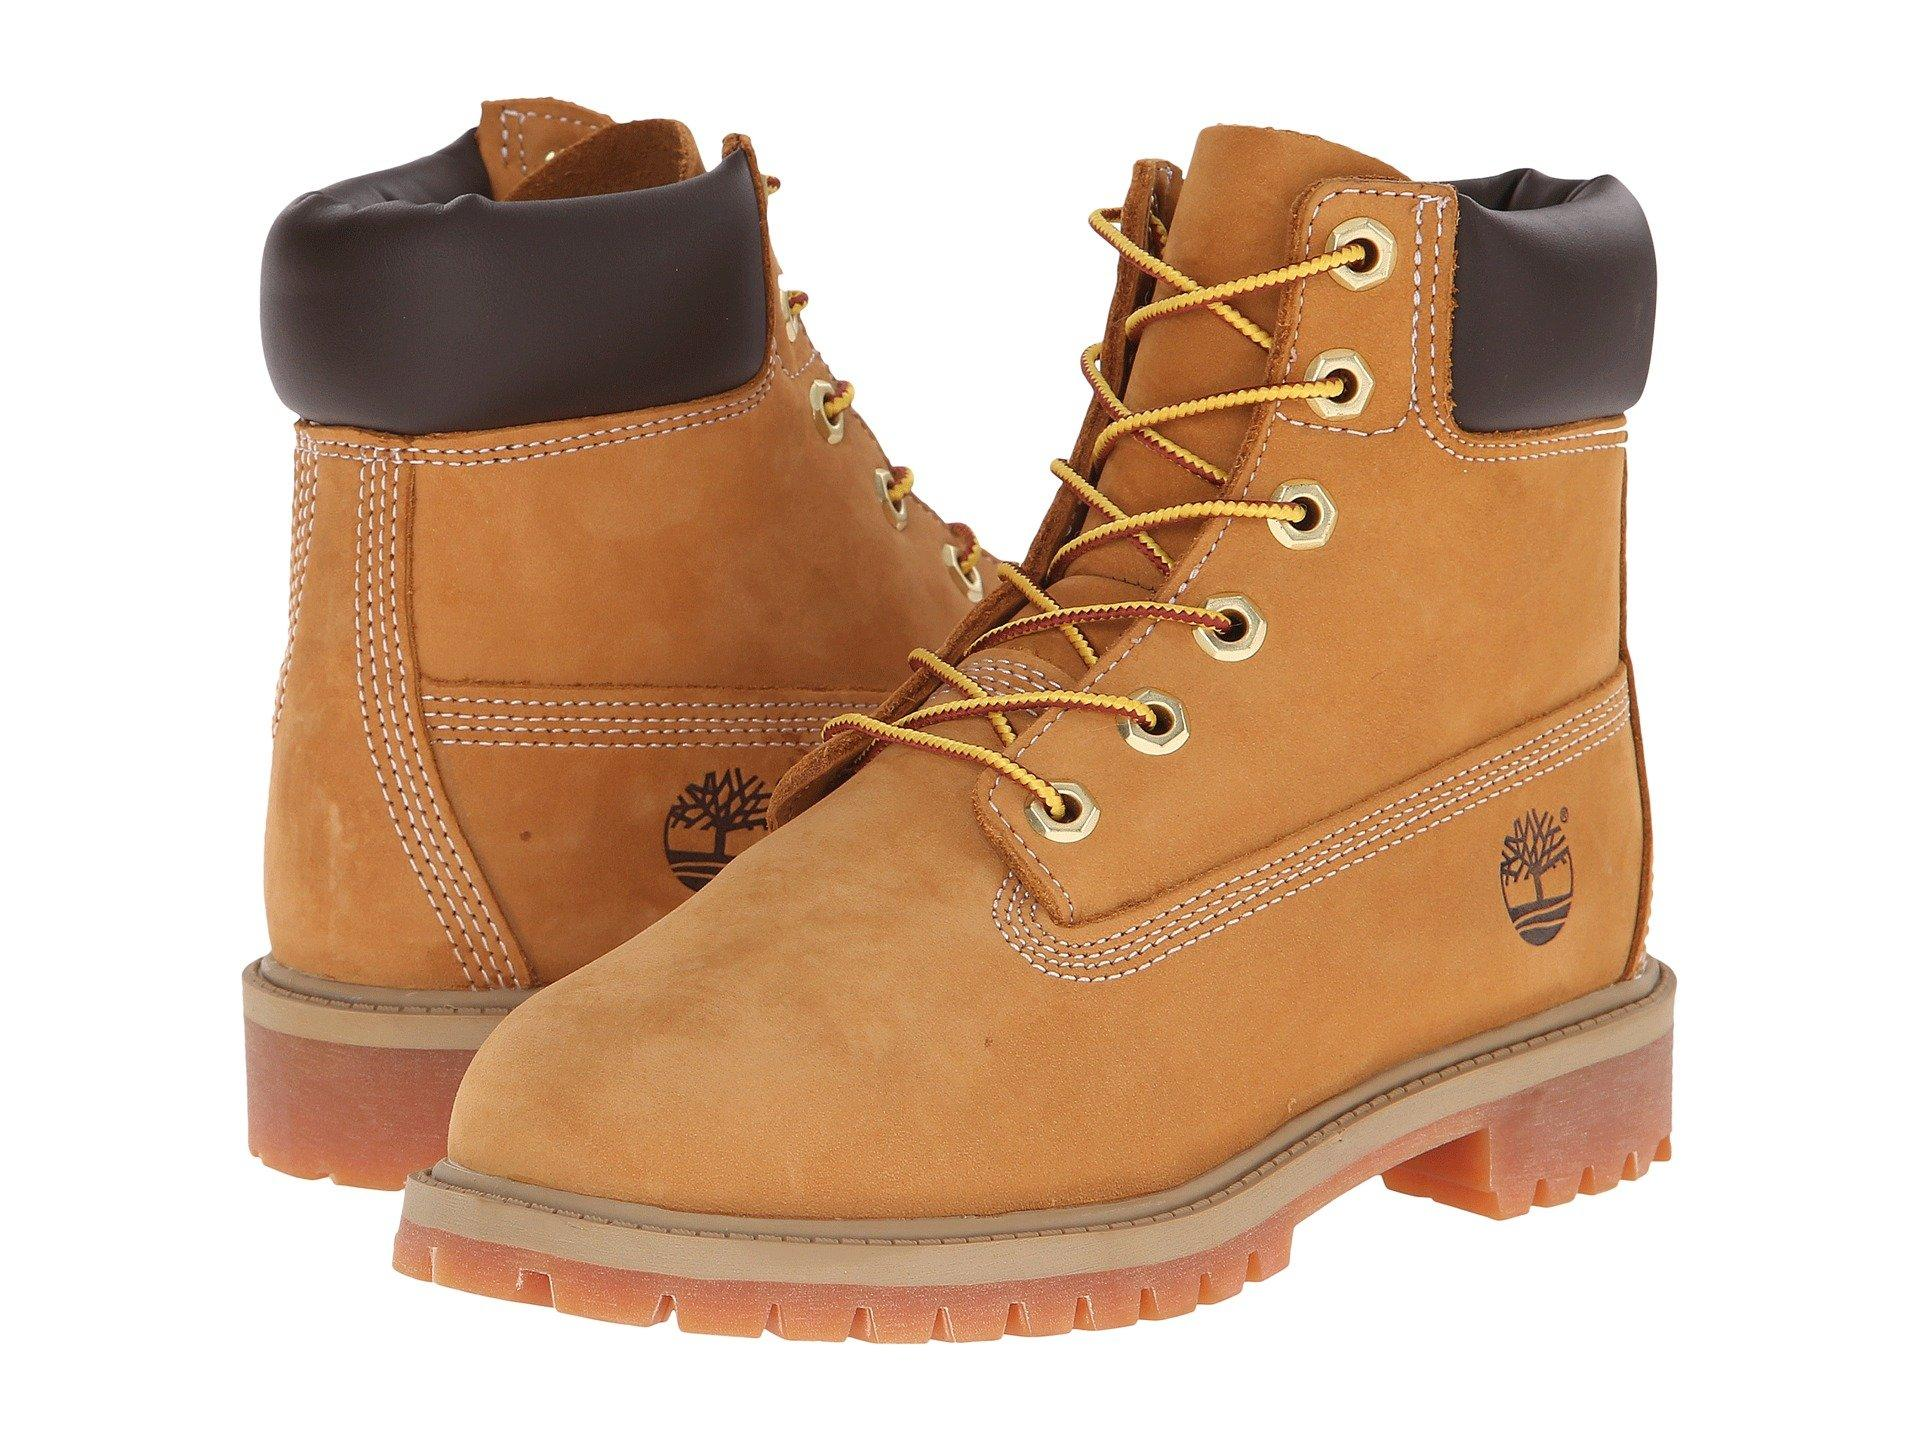 Timberland Boots   Shoes  29f137f94b